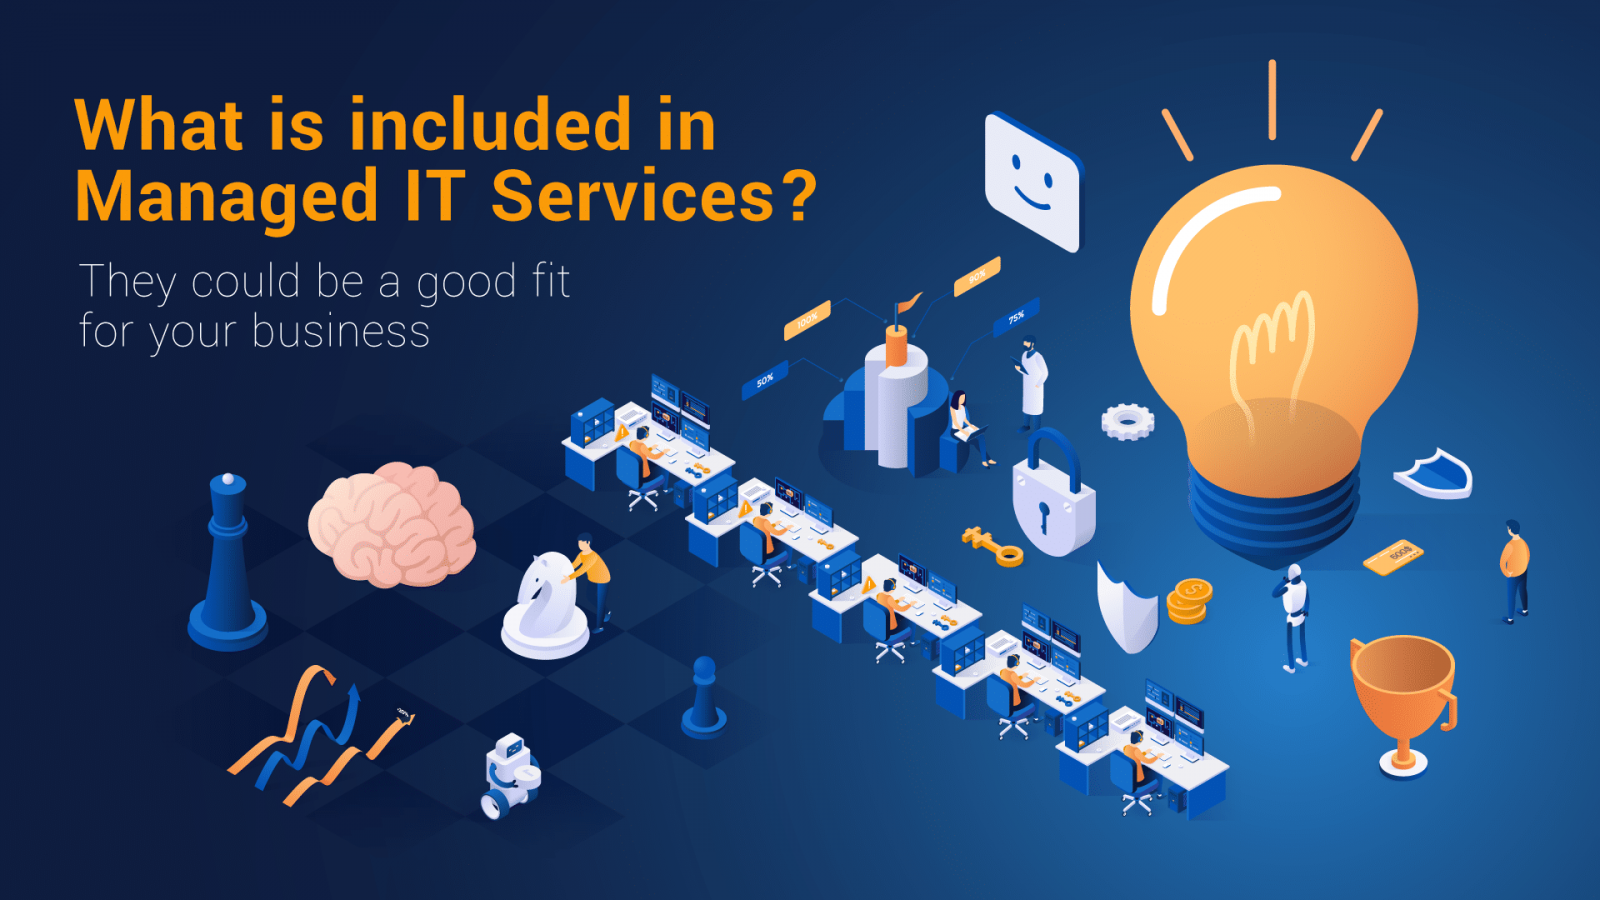 Understanding what is included in Managed IT Services